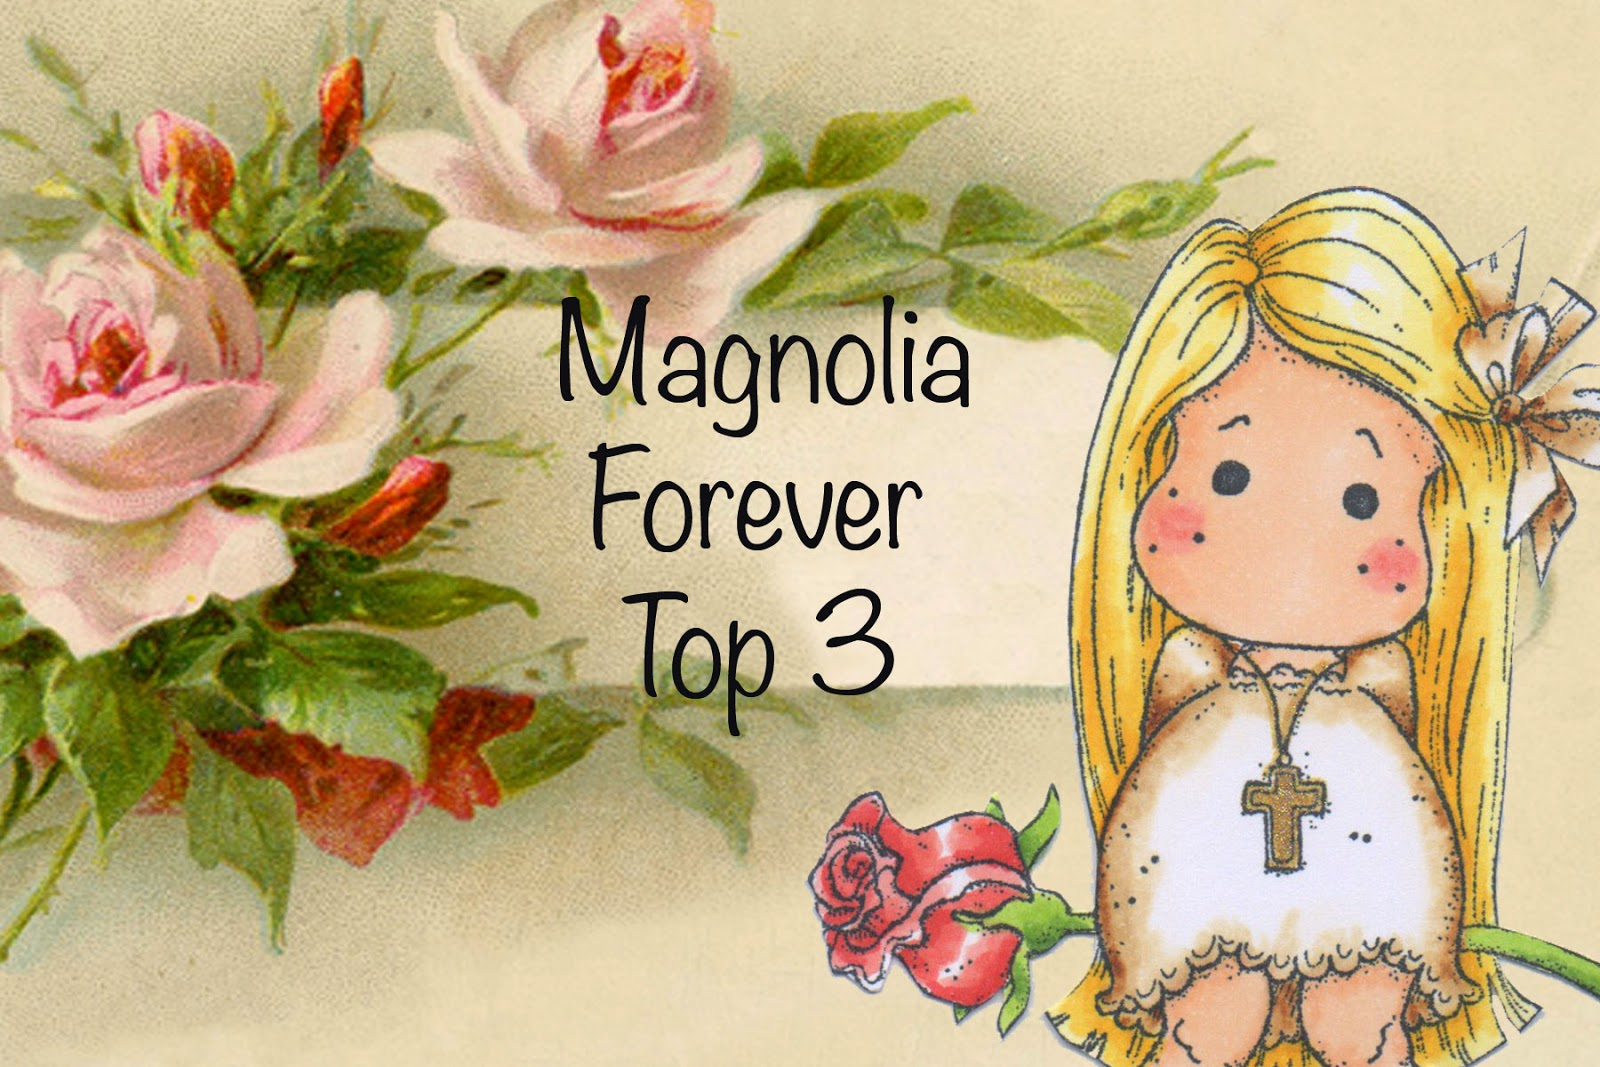 Top 3 Magnolia Forever Challenge